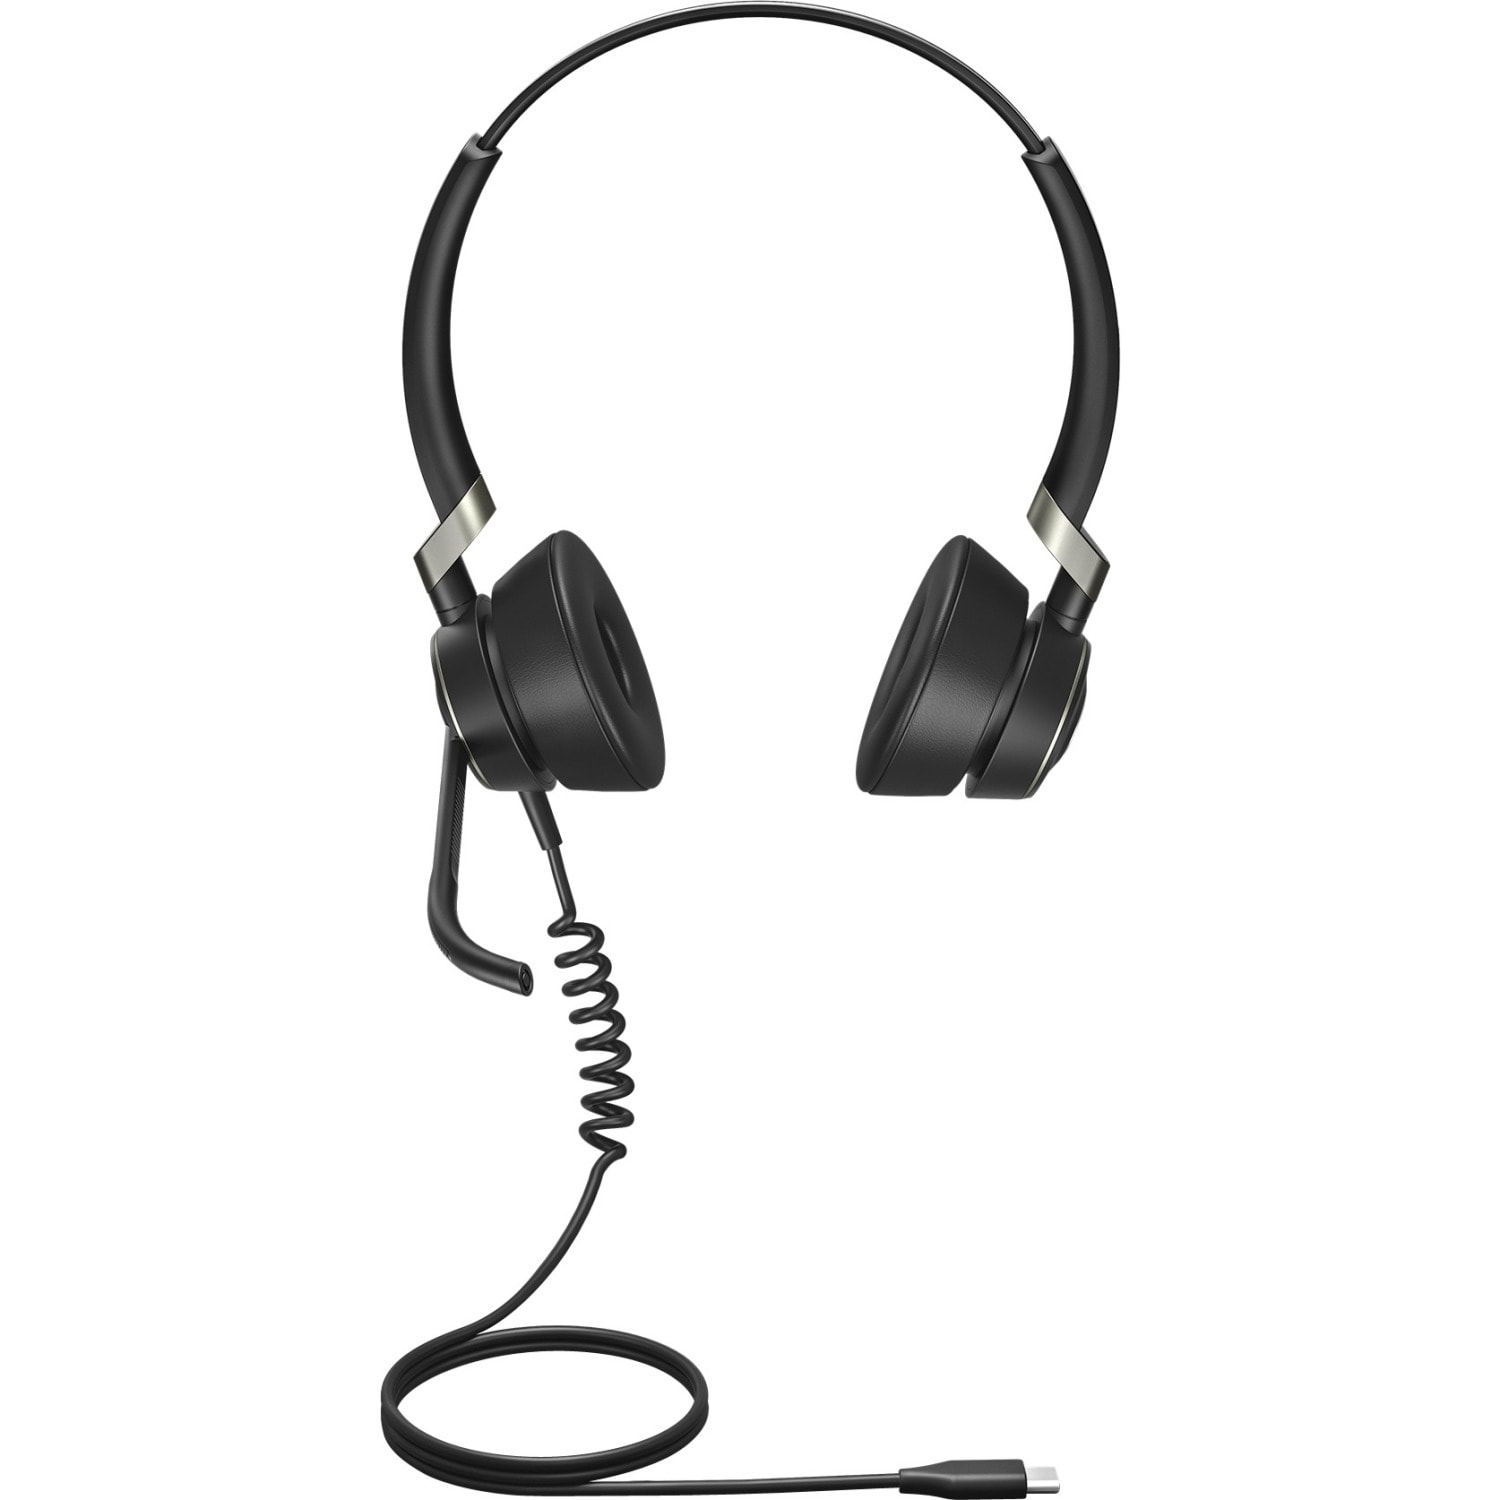 84960c526ab Buy Jabra Engage 50 Wired Stereo Headset - Over-the-head - Supra ...